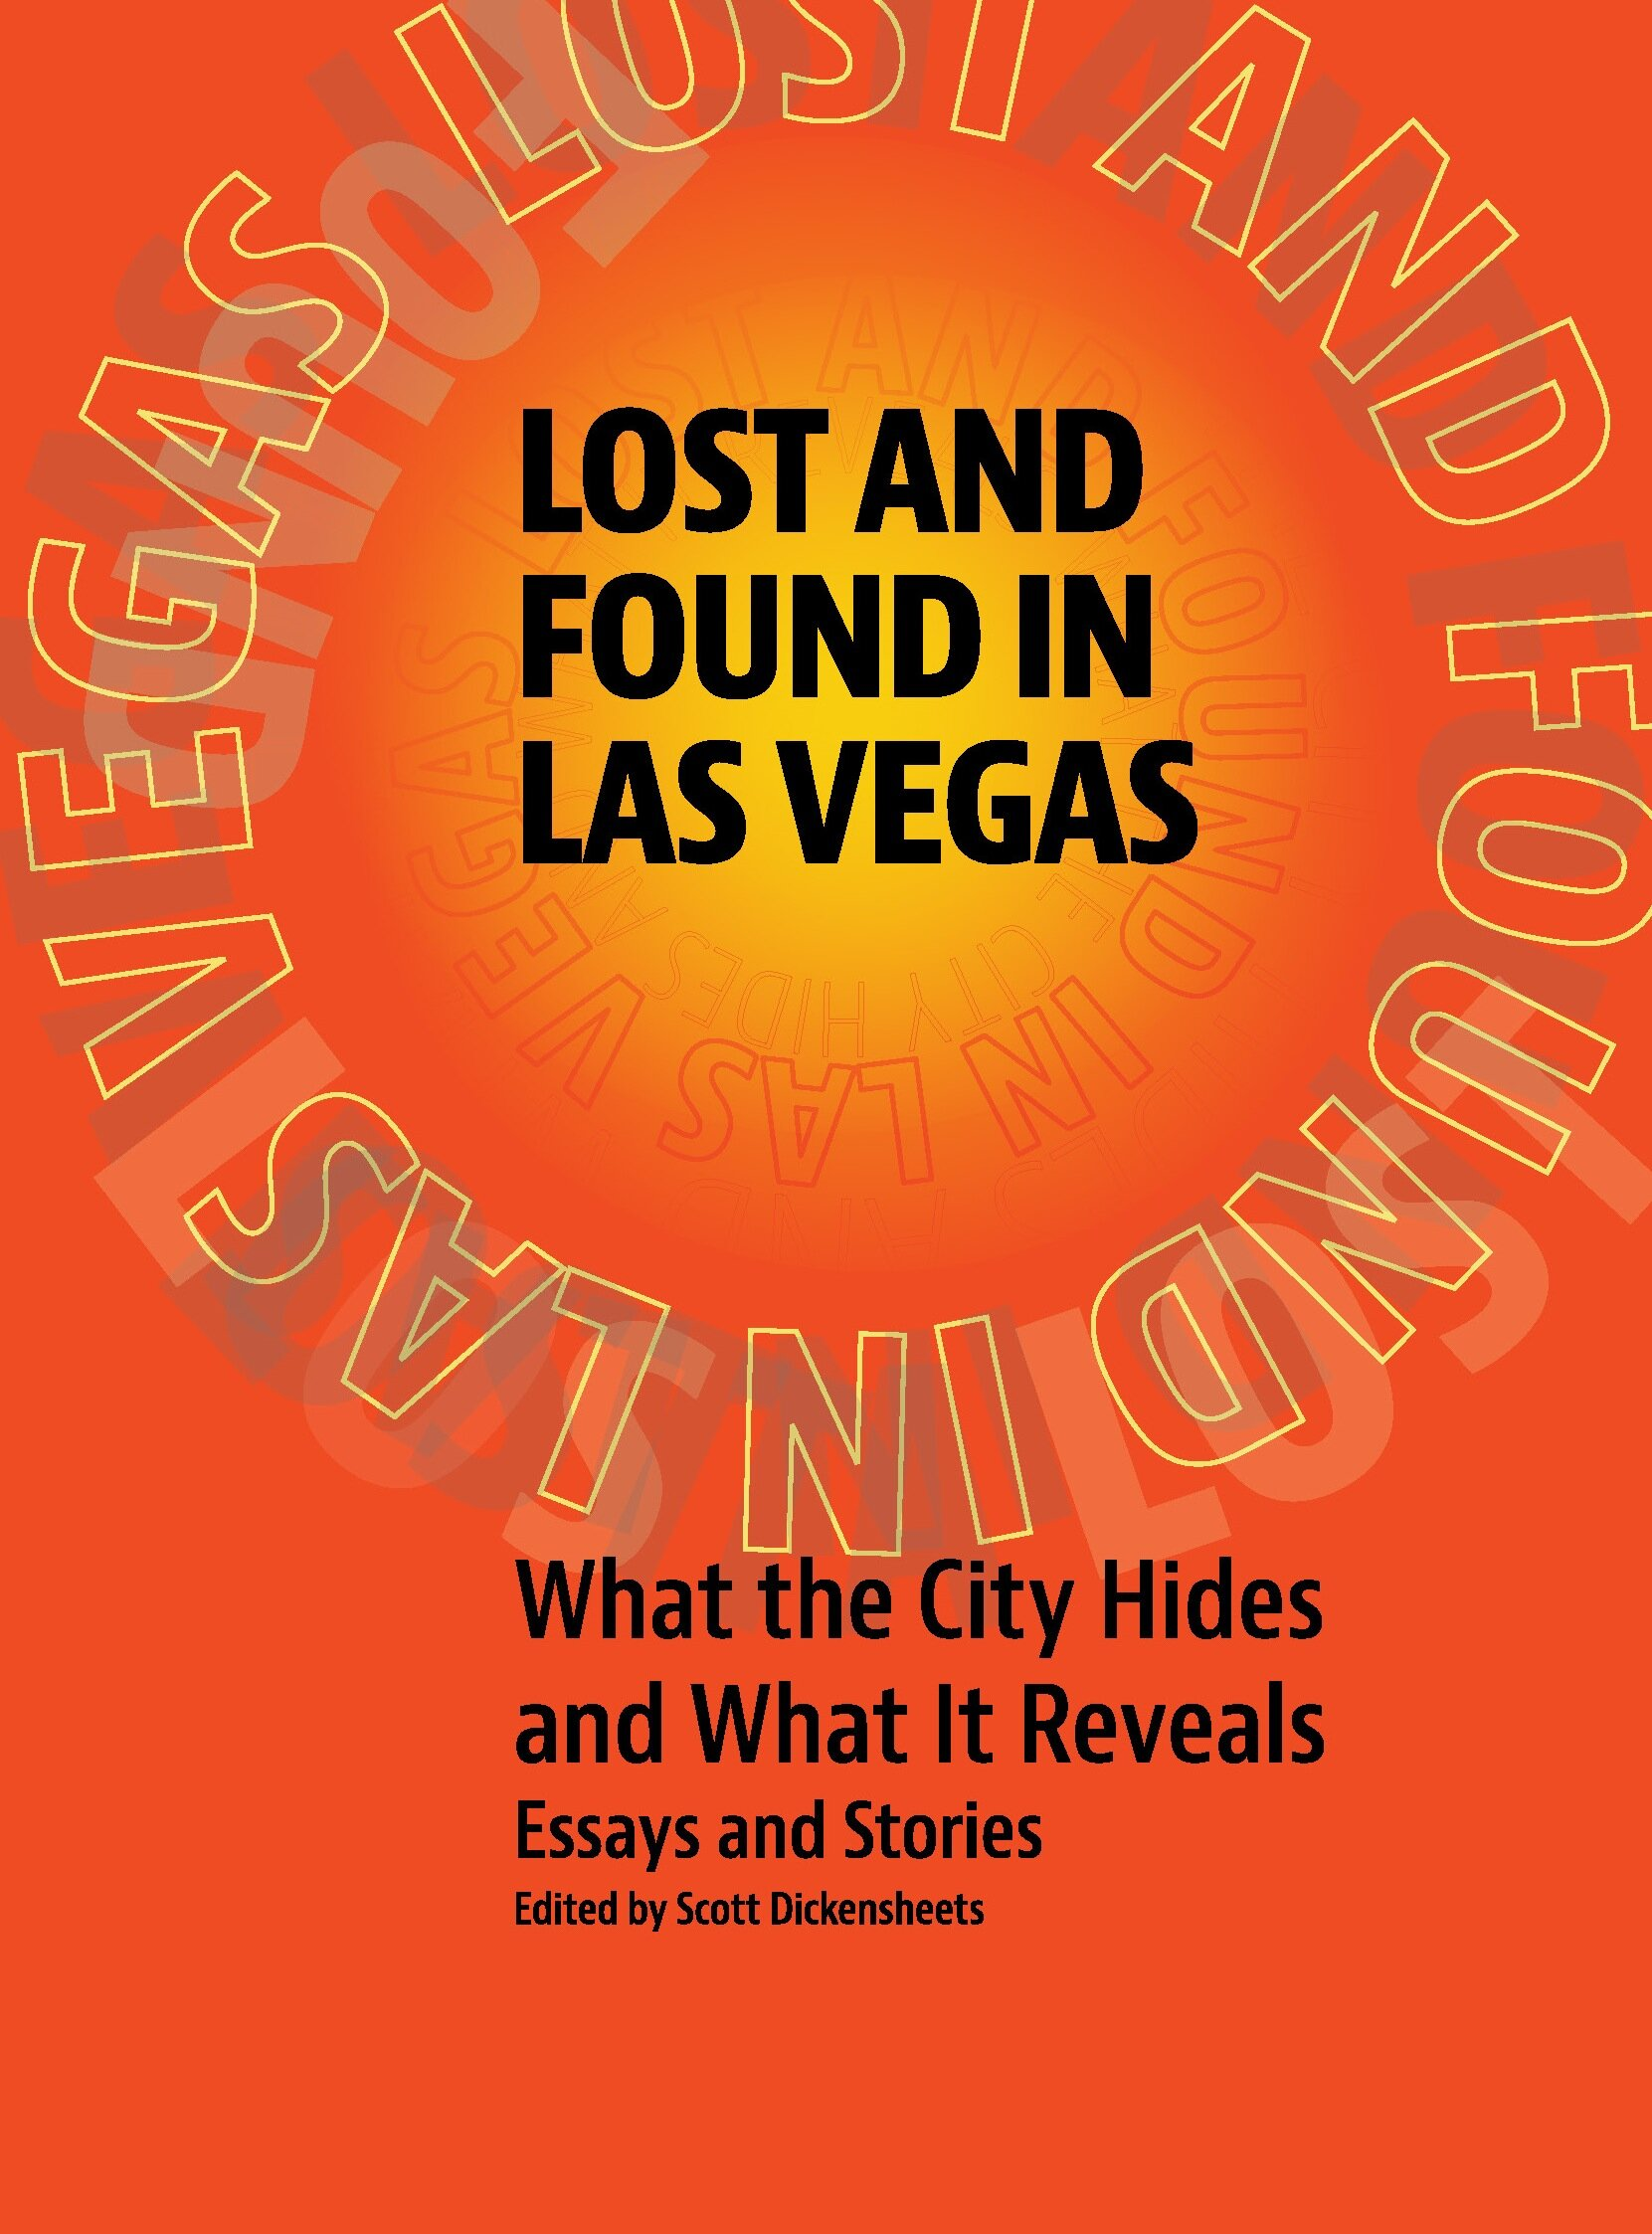 Lost and Found Las Vegas Writes Cover_2014.jpg